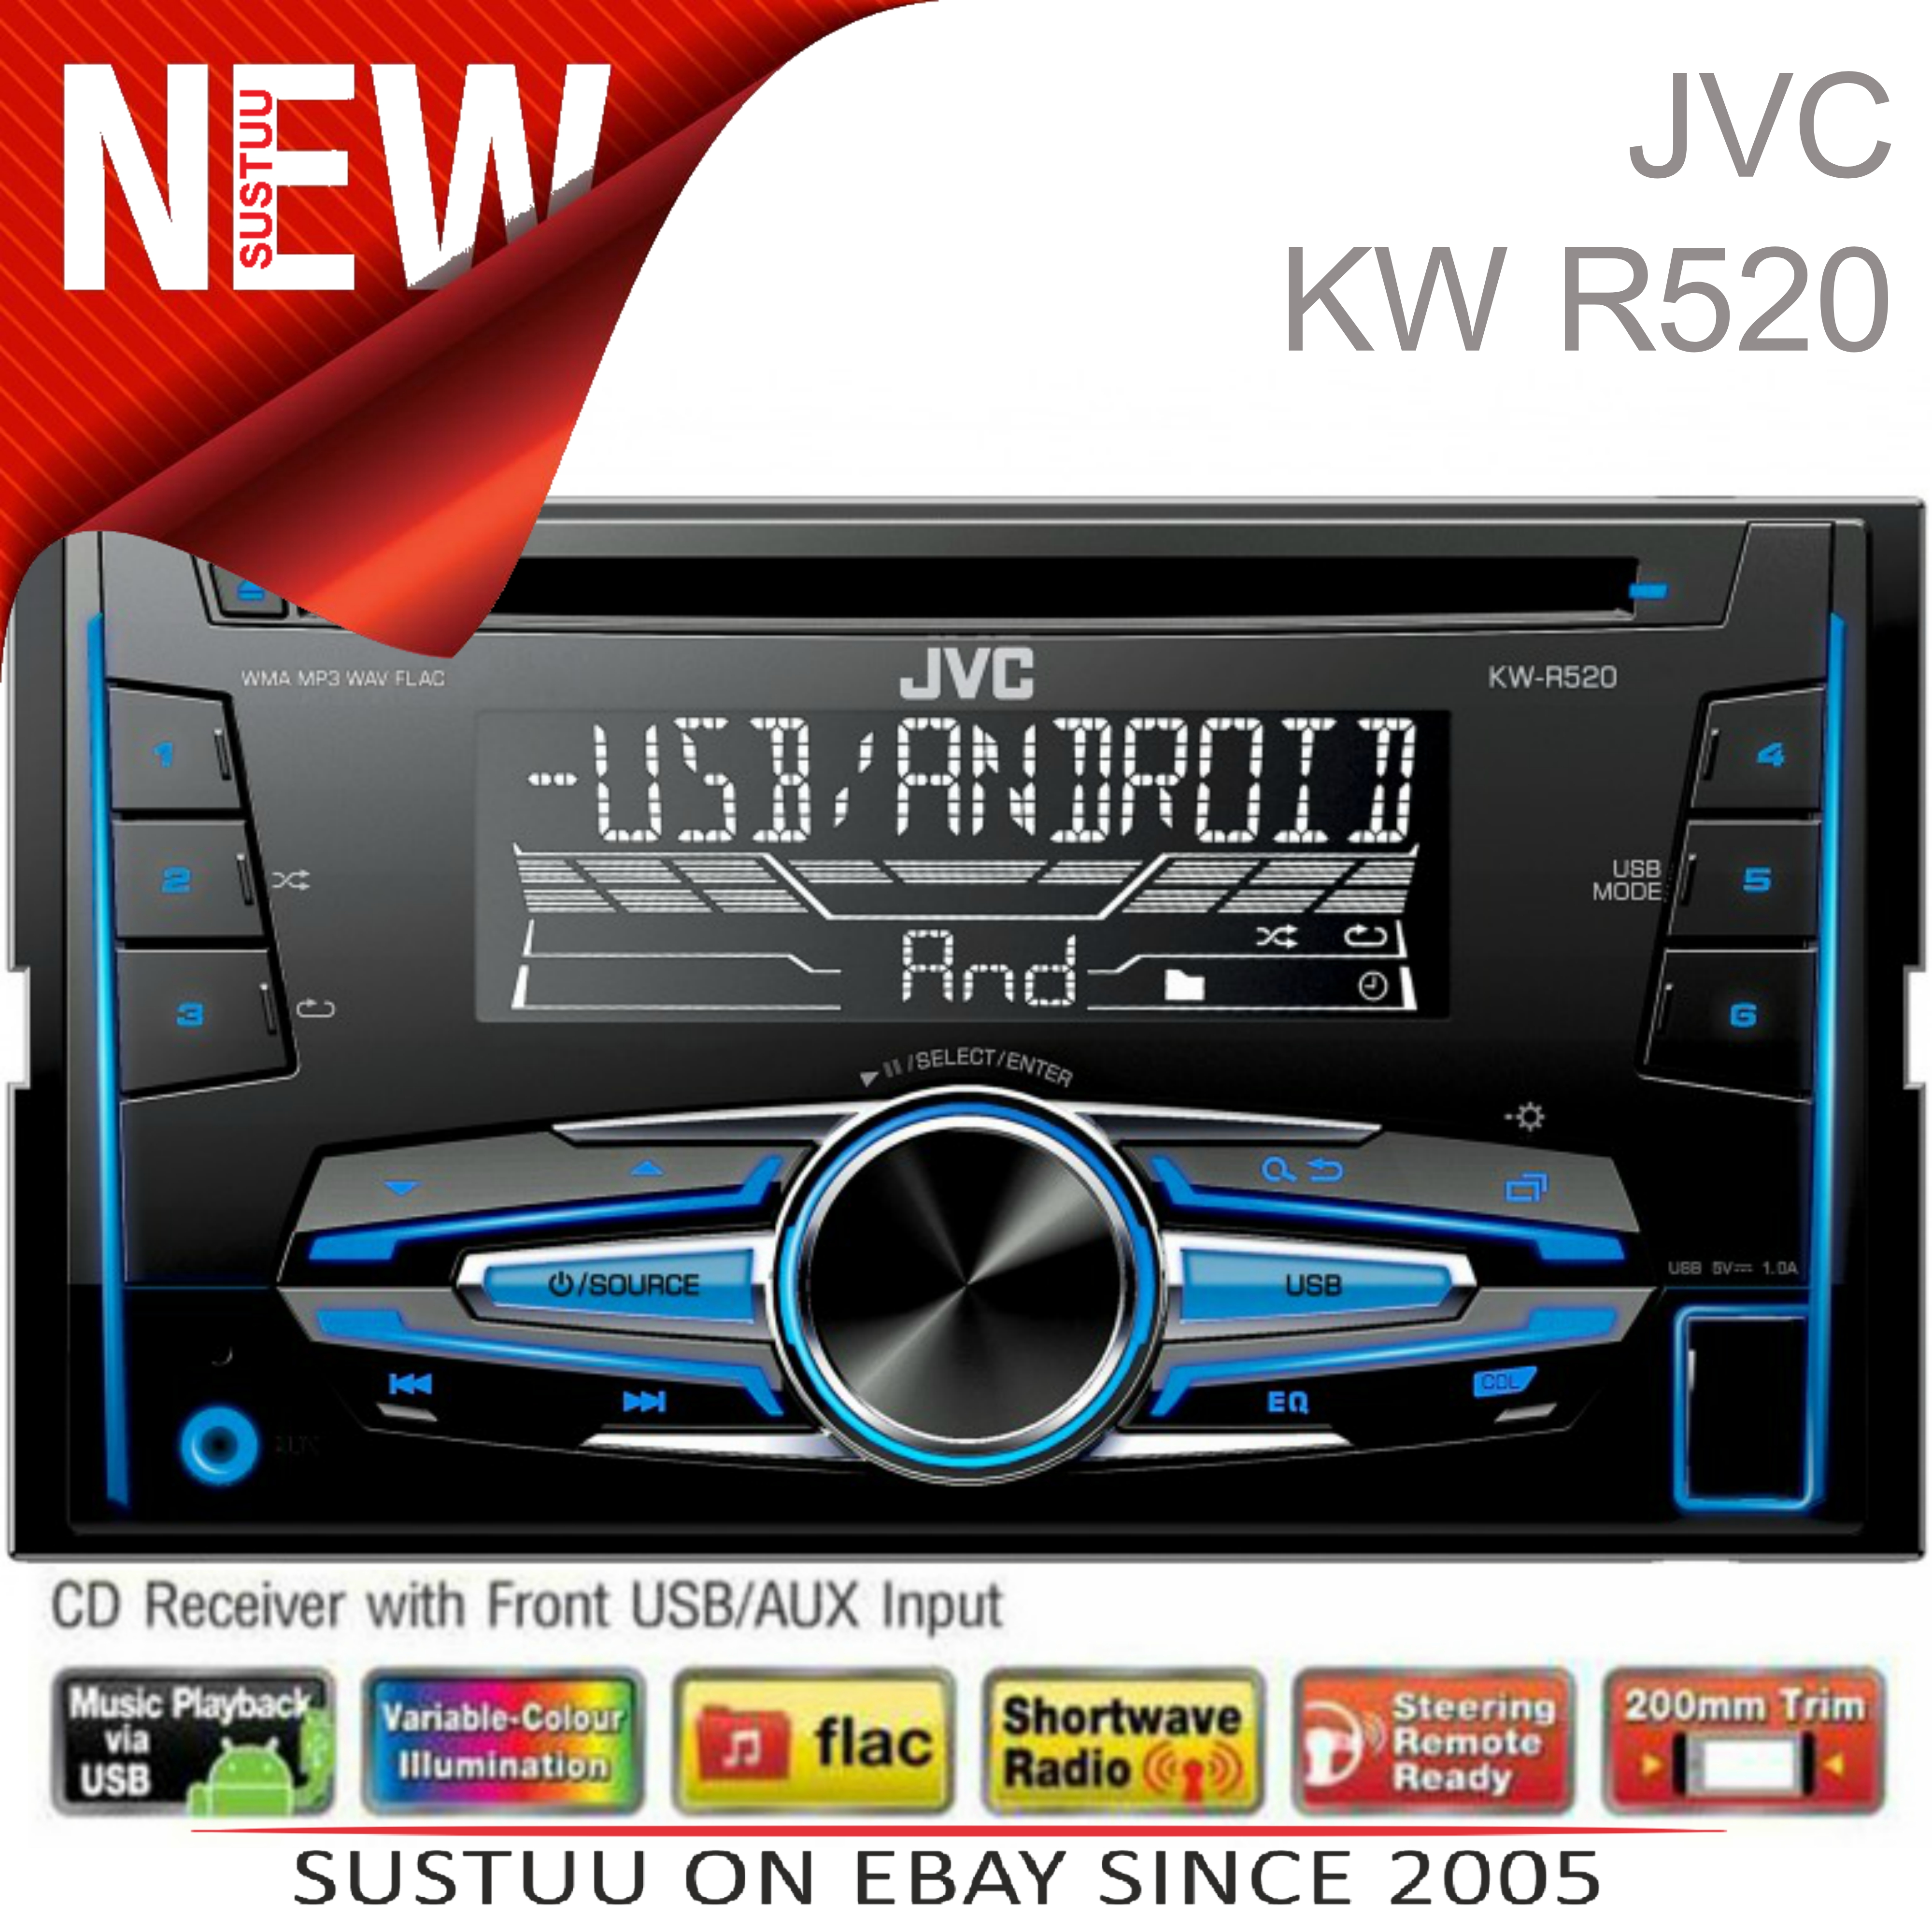 Sentinel JVC KW R520 Car Stereo│Double DIN│CD│Radio│MP3│FLAC